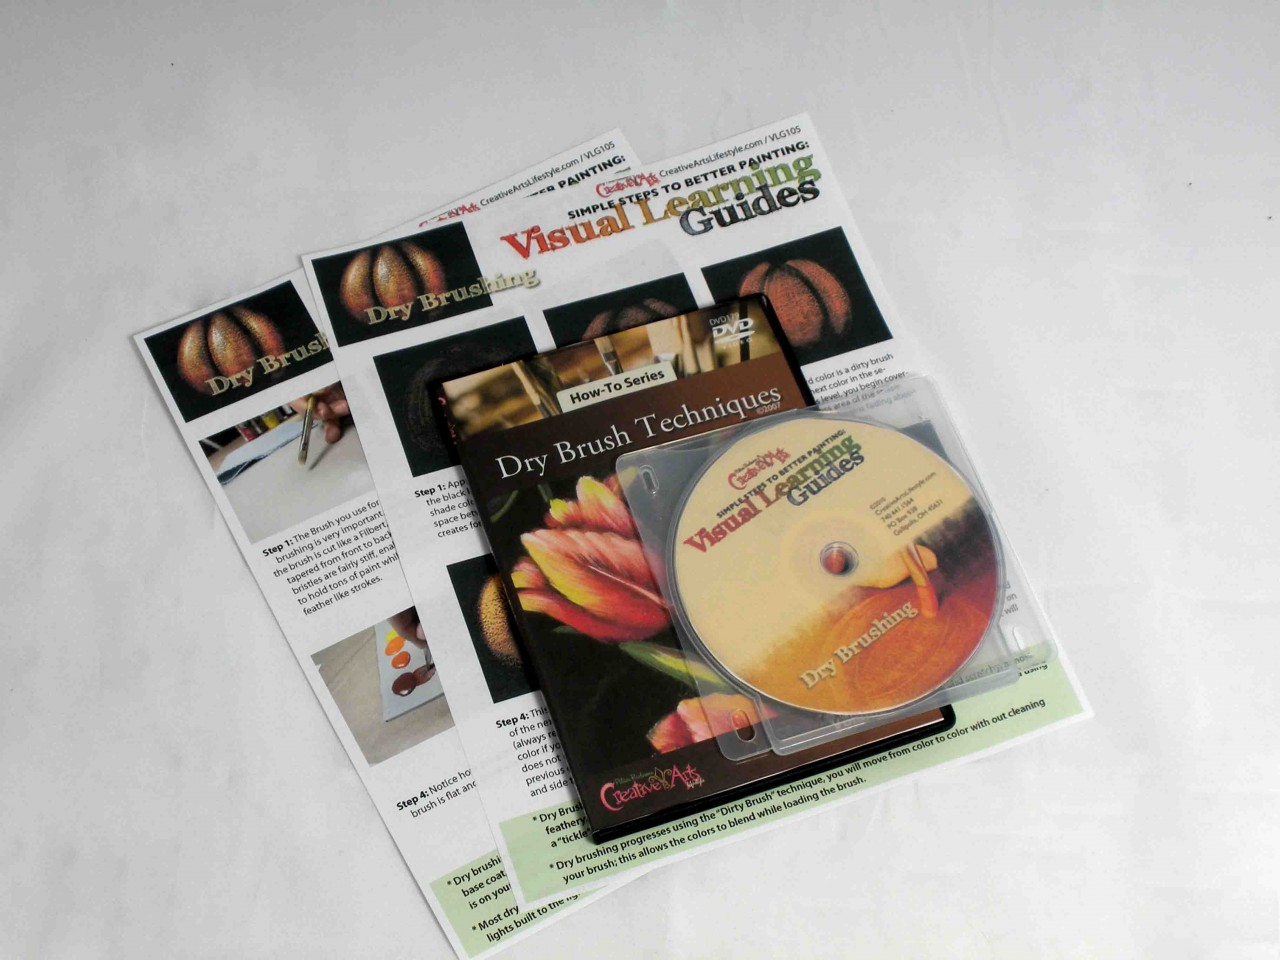 Visual Learning Guide + DVD: Dry Brushing & How to Dry Brush DVD Combo